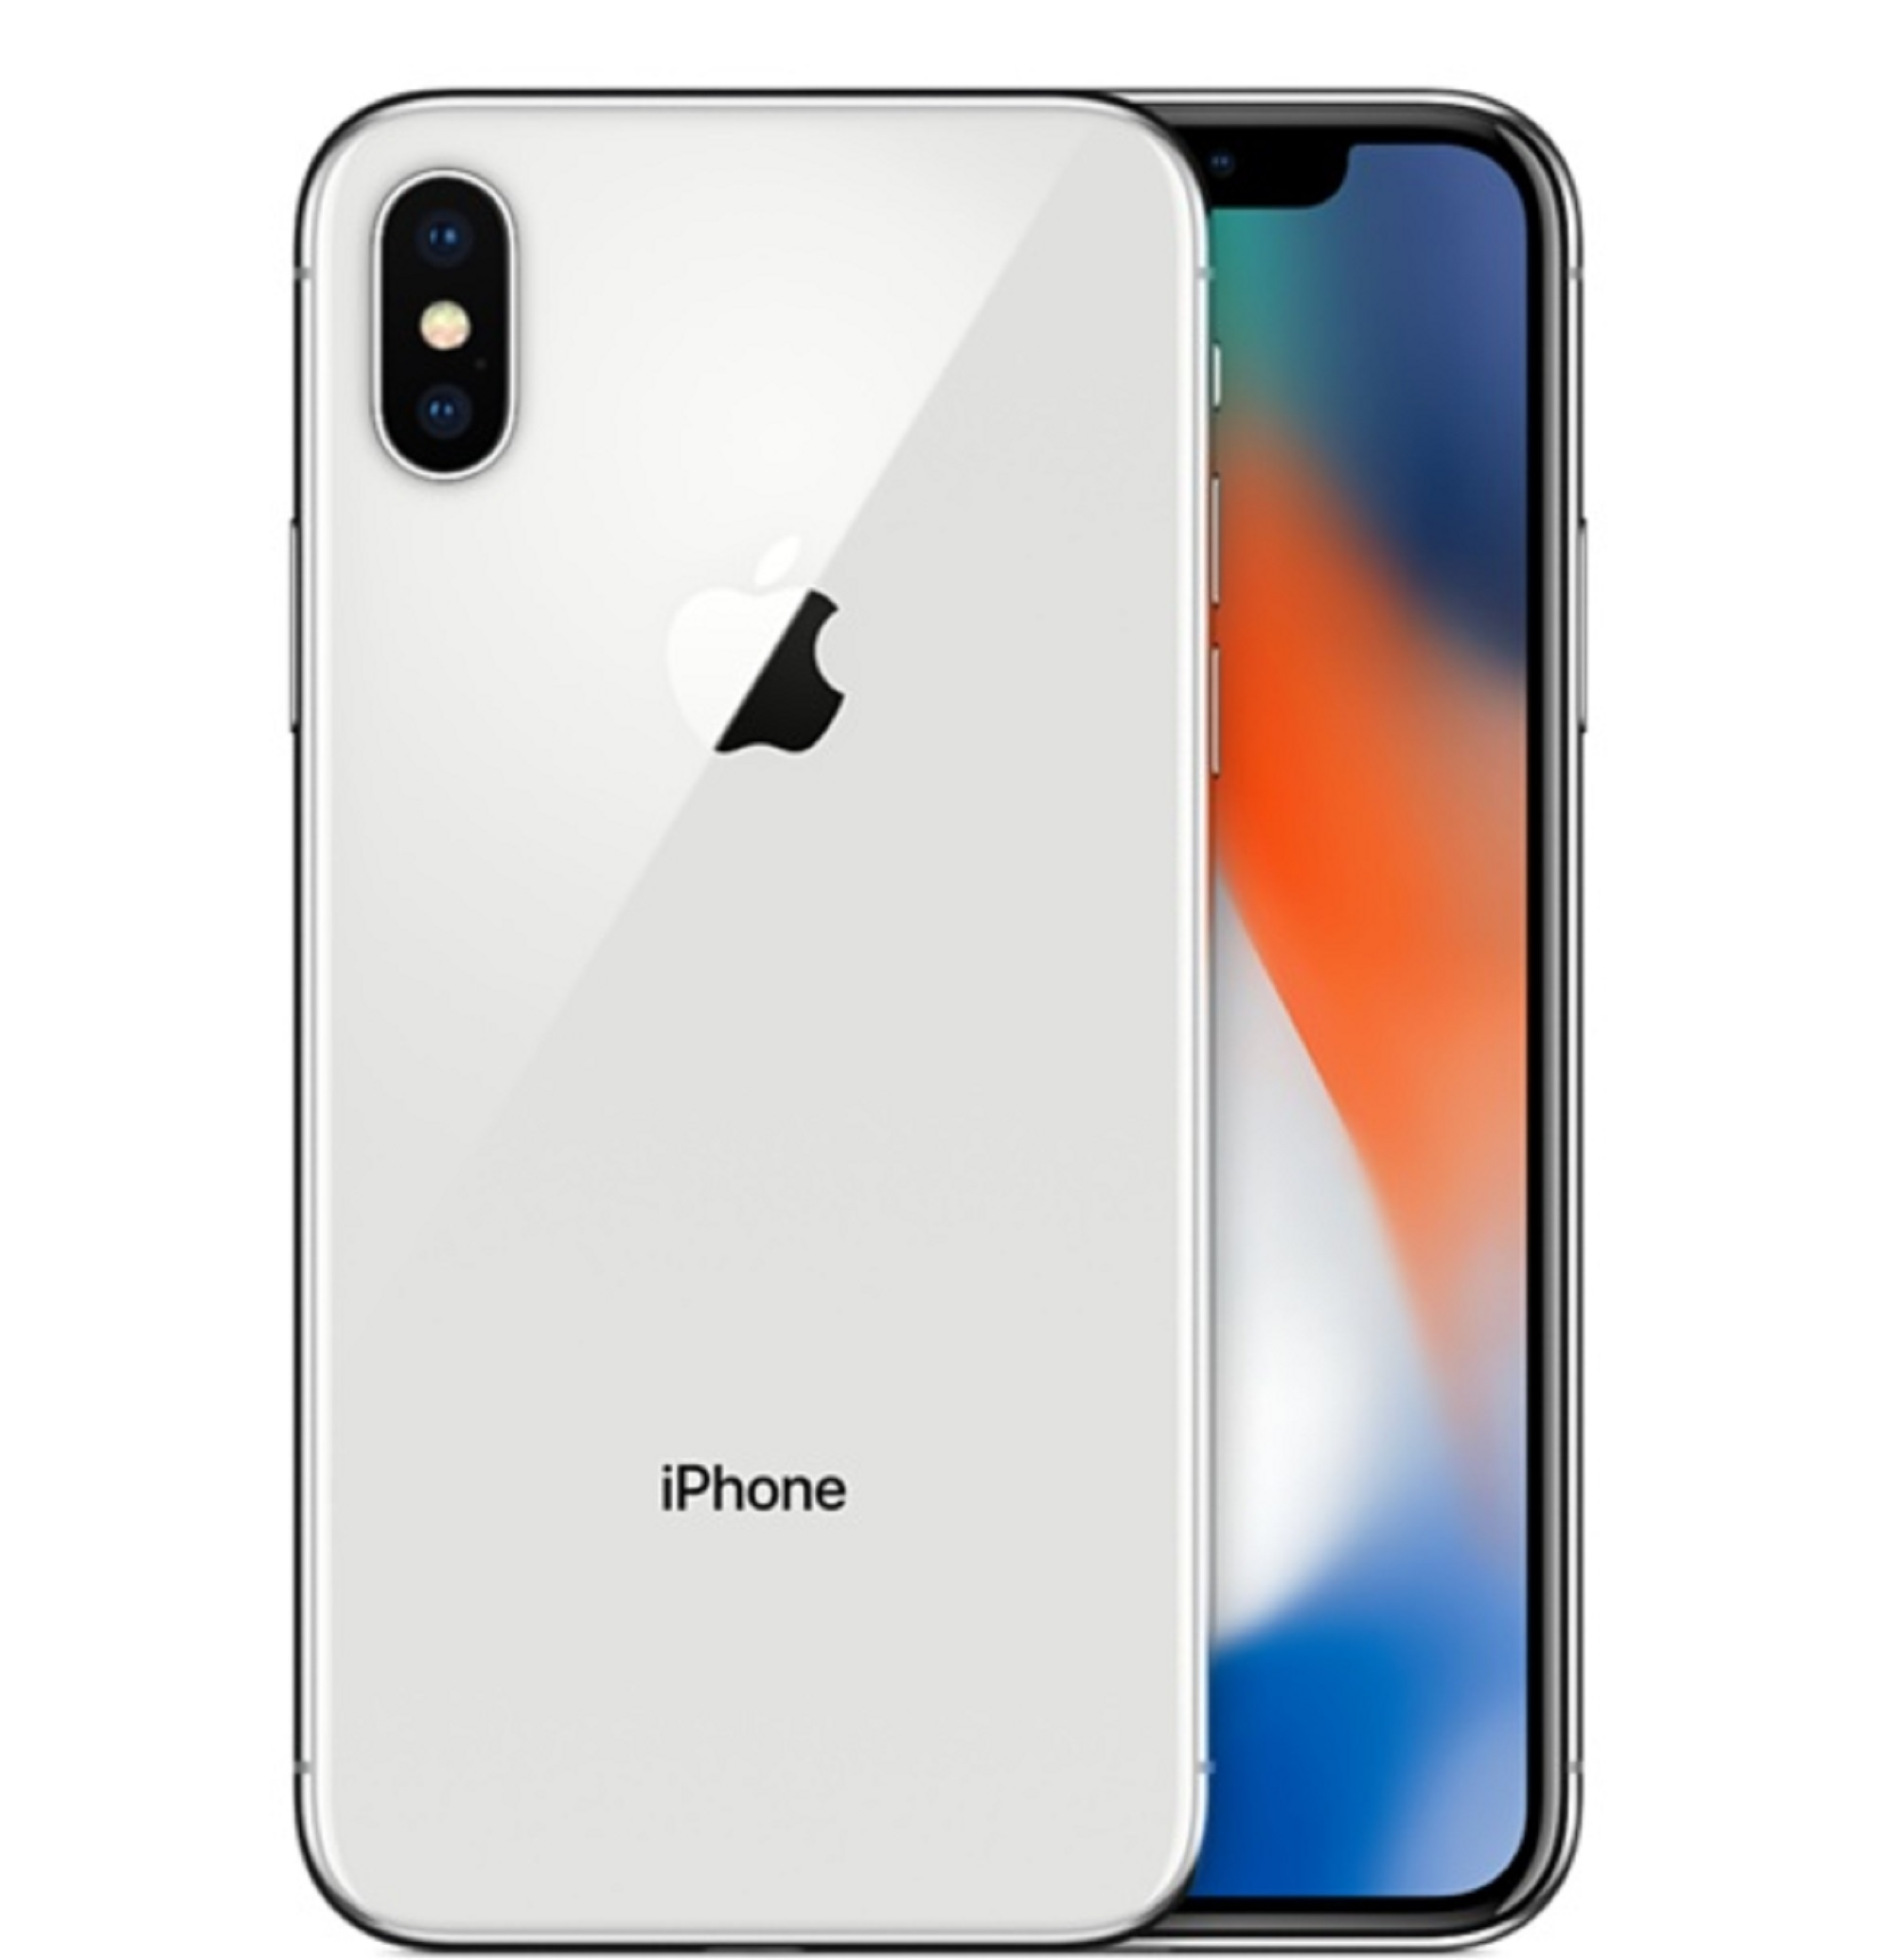 thumbnail 5 - Apple iPhone X 64GB Factory Unlocked Smartphone